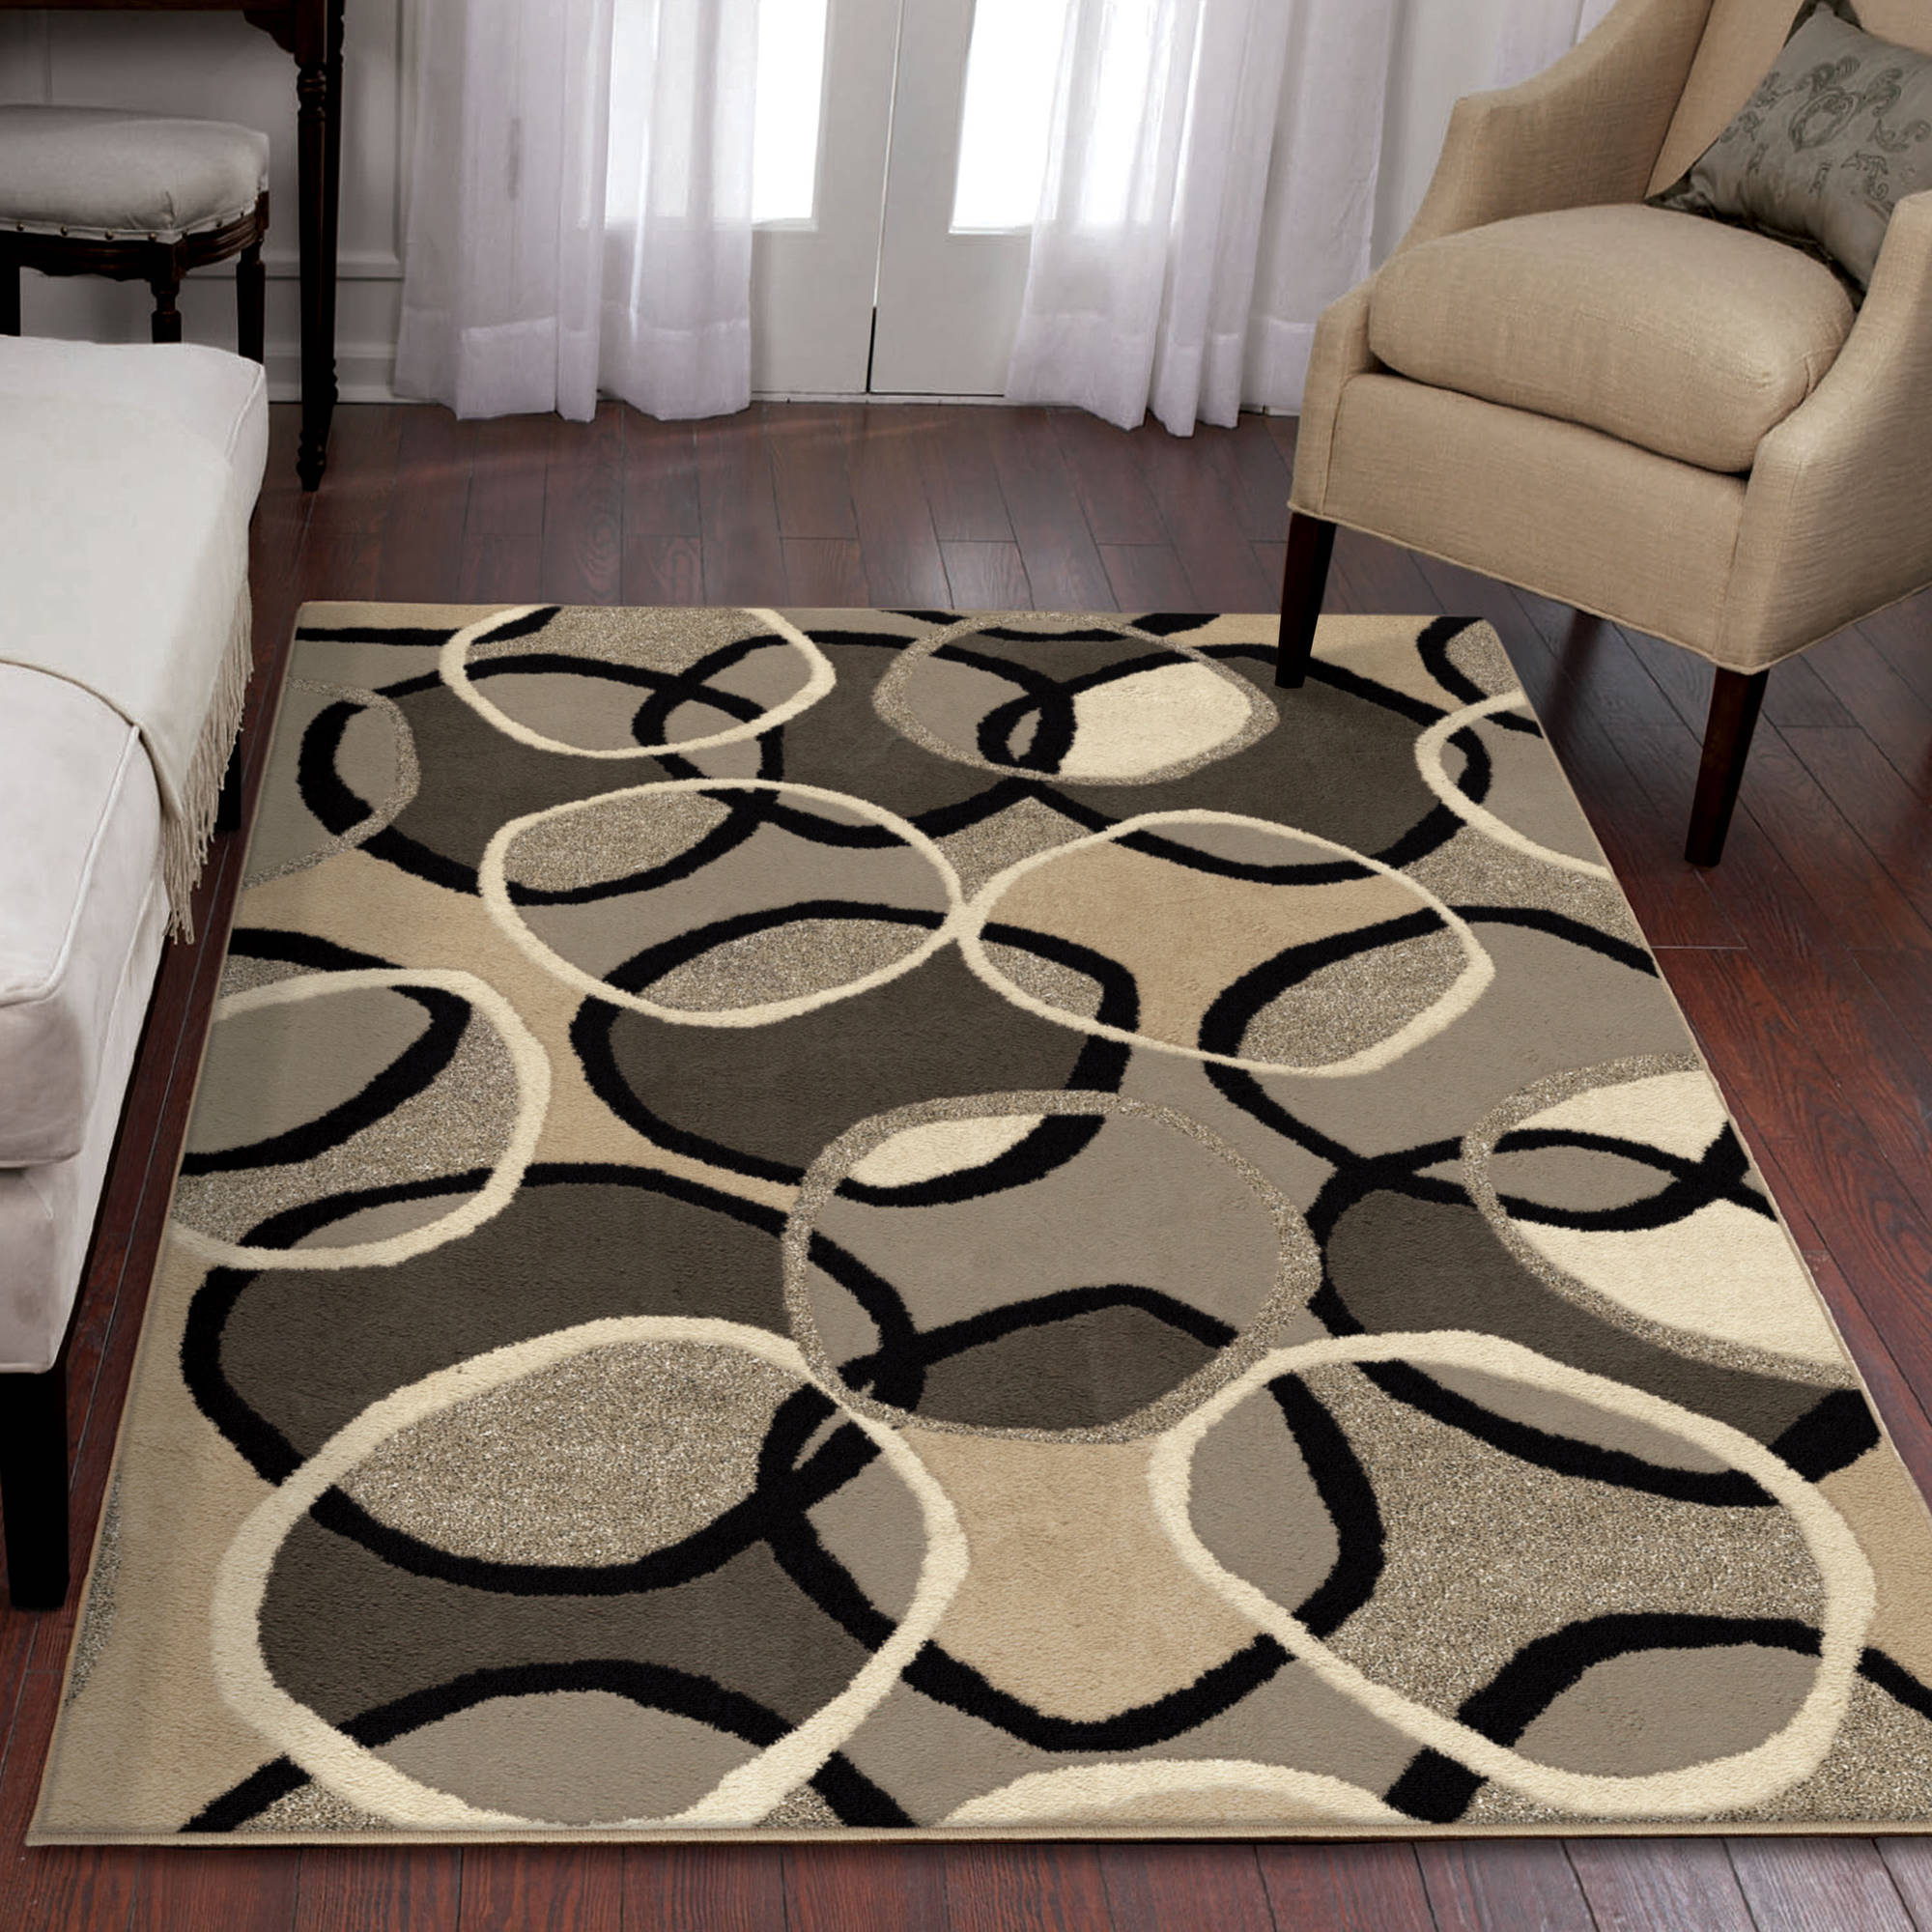 Orian Rugs Overlap Multi-Colored Area Rug